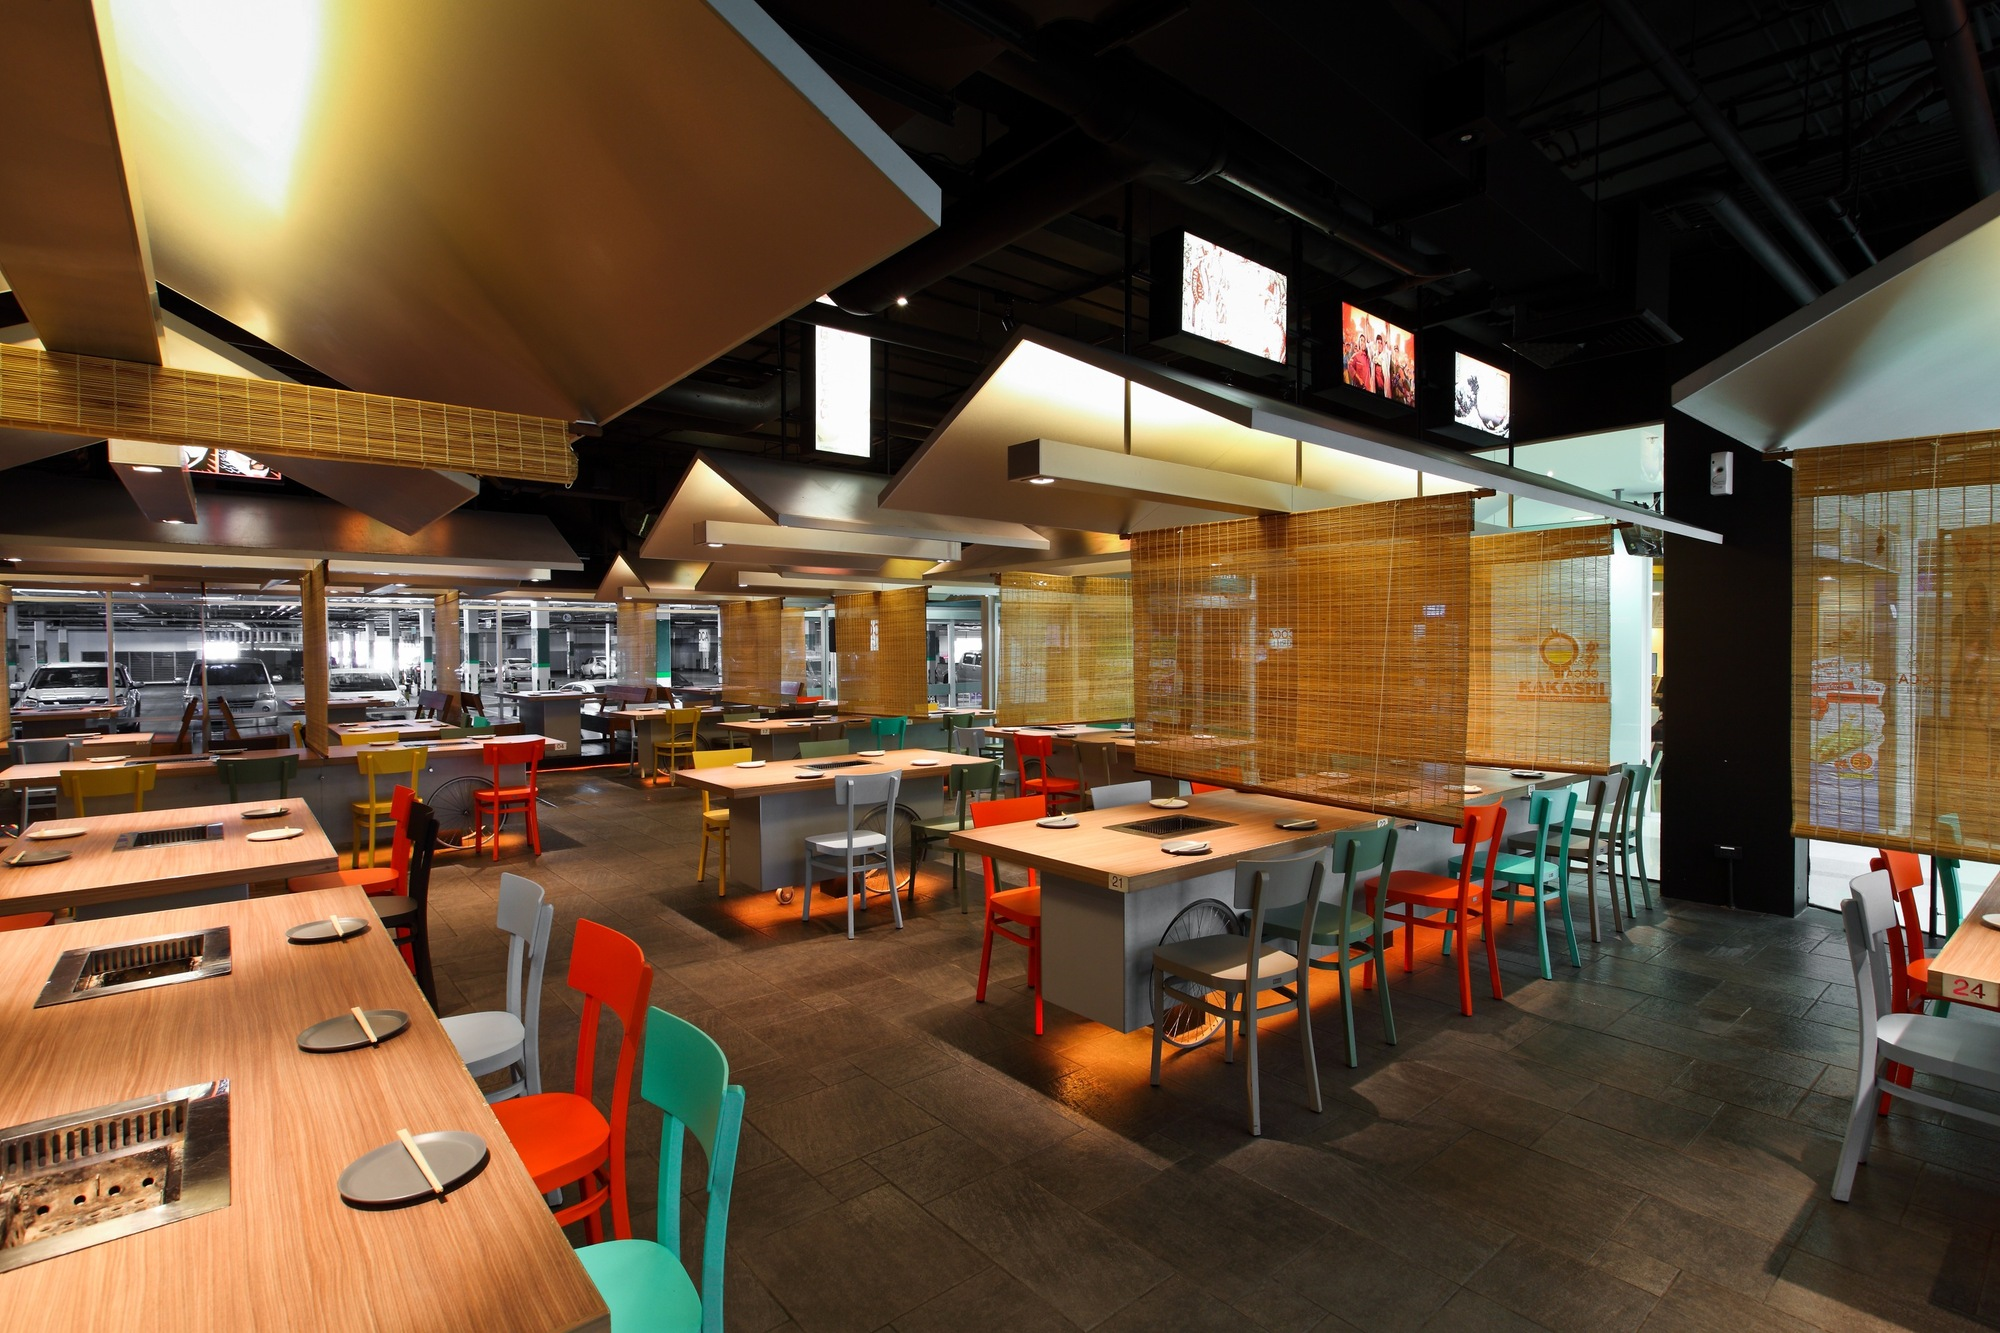 Coca Grill restaurant by Integrated Field : coca grill restaurant by integrated field o Office <strong>Furniture Chairs</strong> from materialicious.com size 2000 x 1333 jpeg 678kB